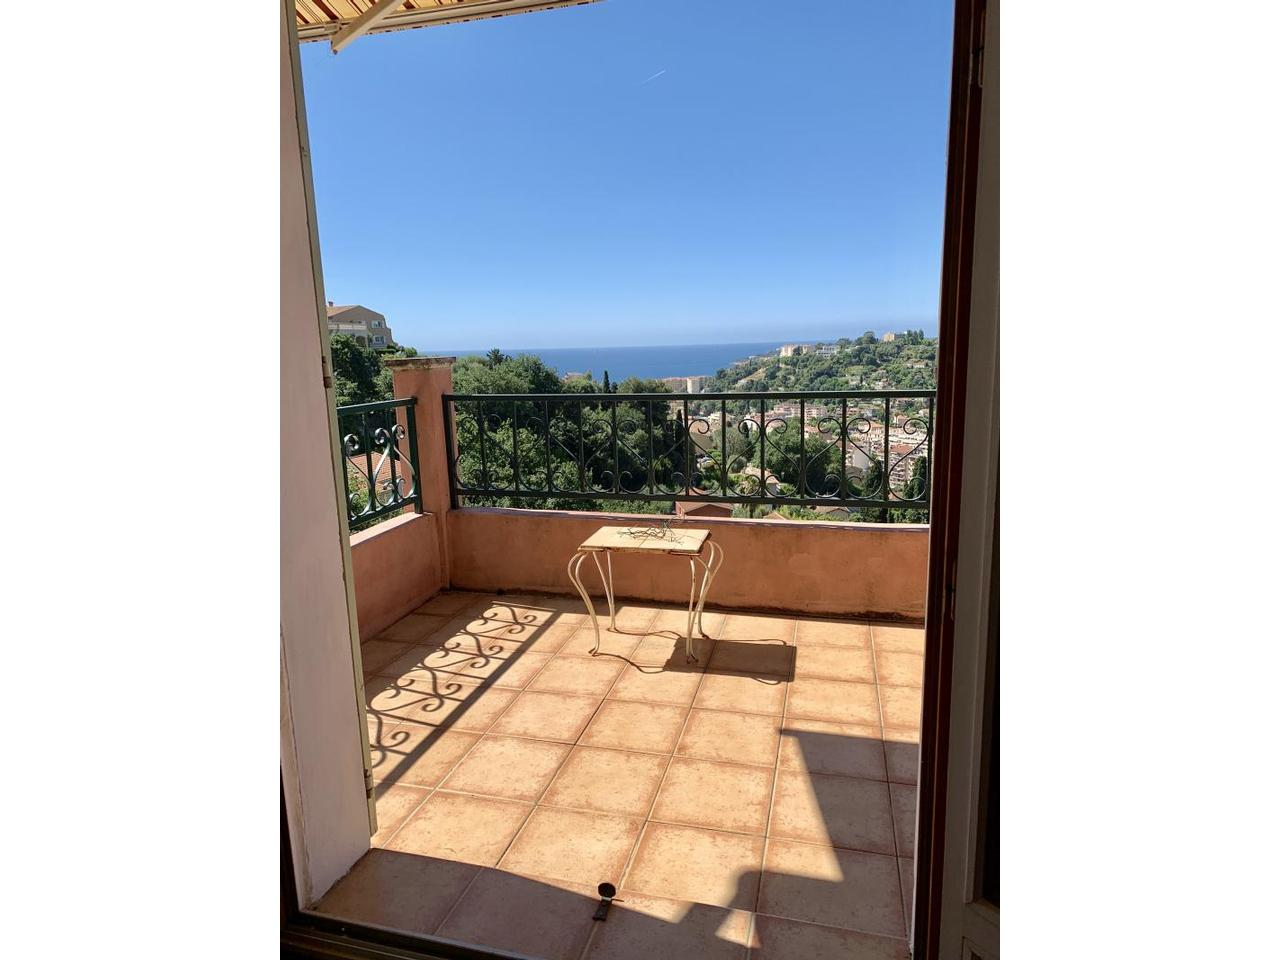 Menton ffrench riviera sea view house for sale